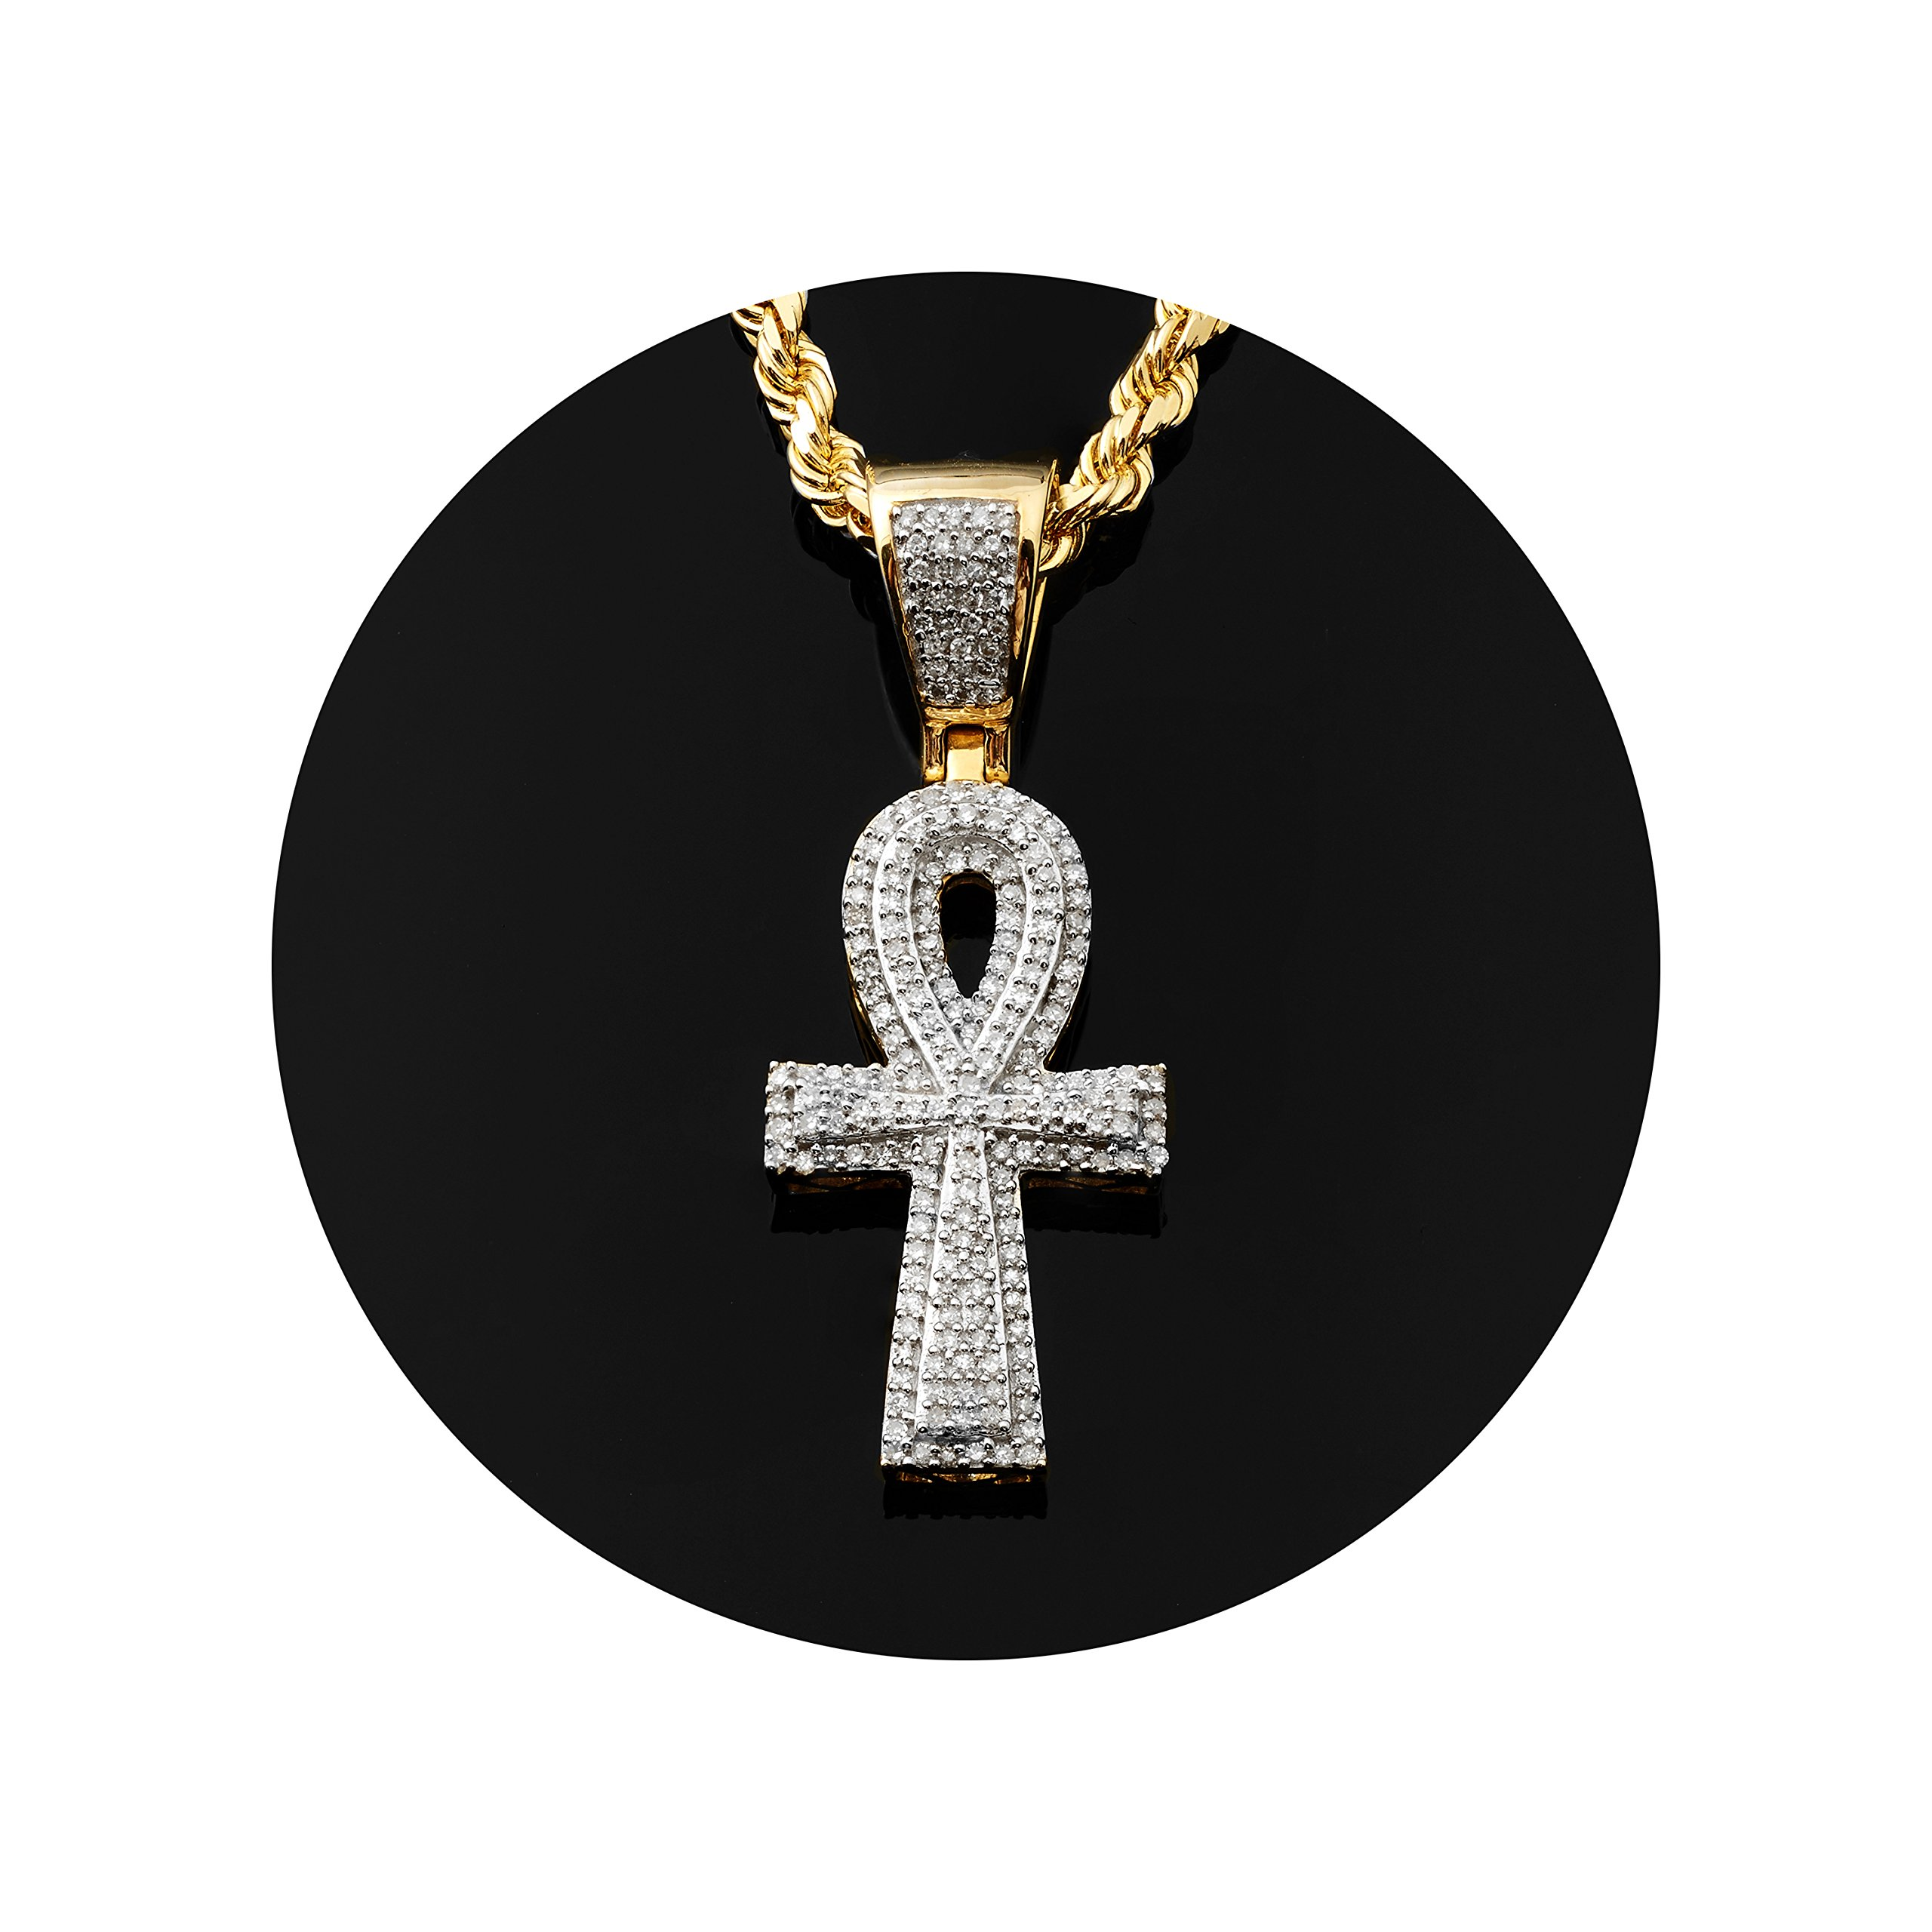 LoveBling 10K Yellow Gold 0.60ctw (carats) Diamond Ankh Cross 3D Pendant (0.57'' x 1.53'') by LOVEBLING